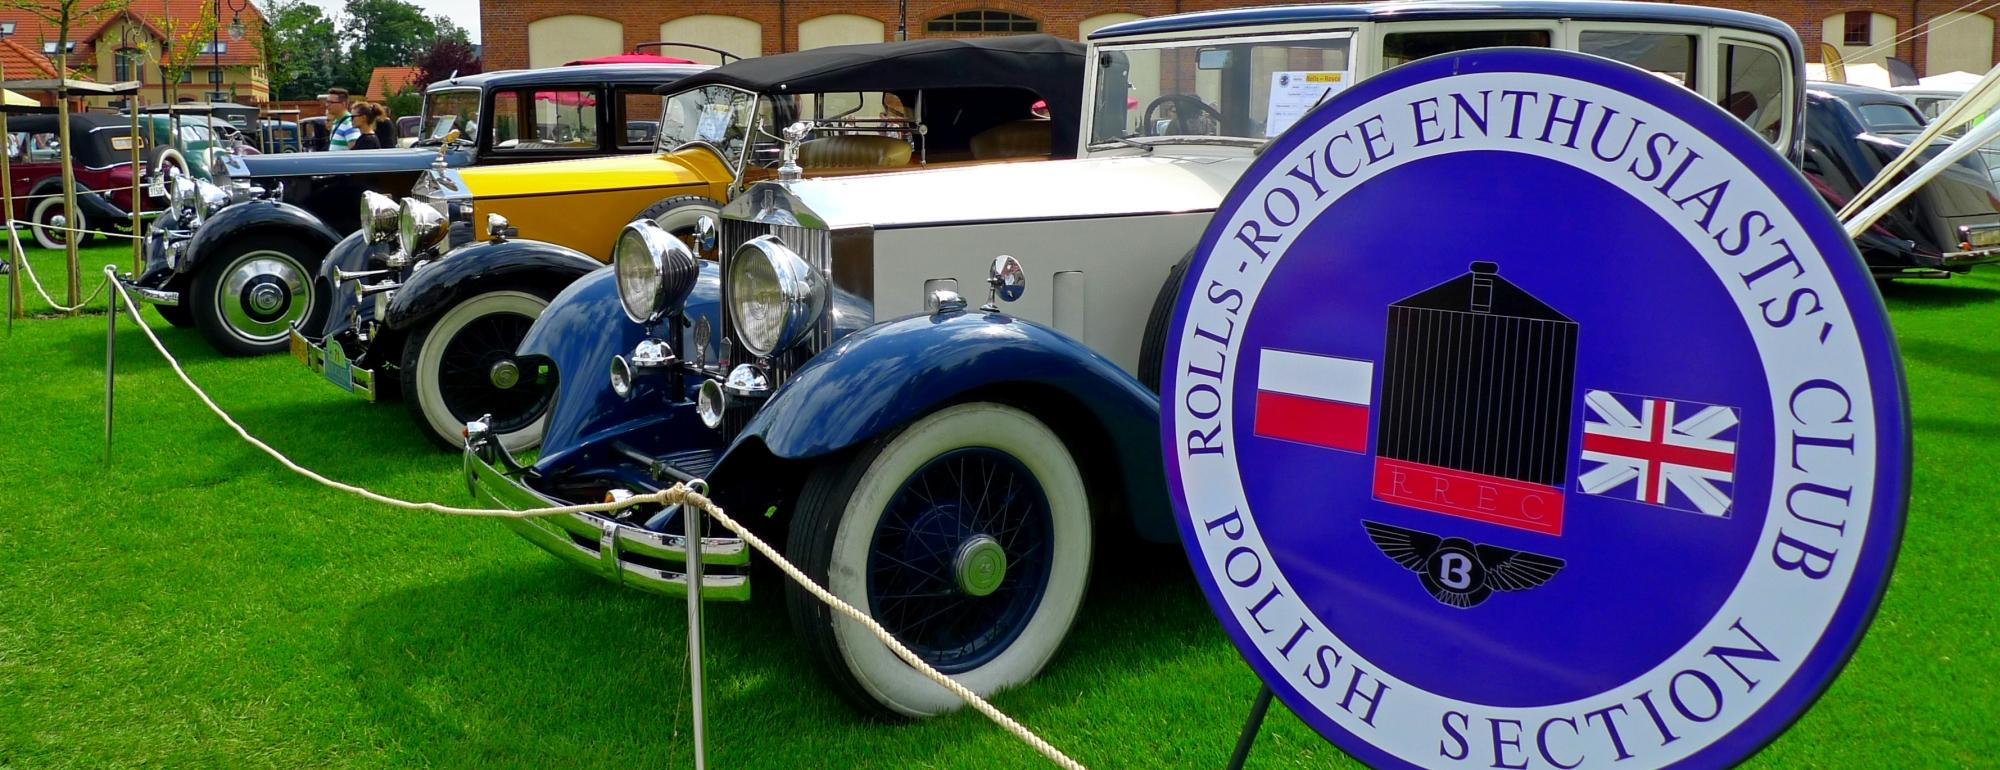 Rolls-Royce Enthusiasts' Club